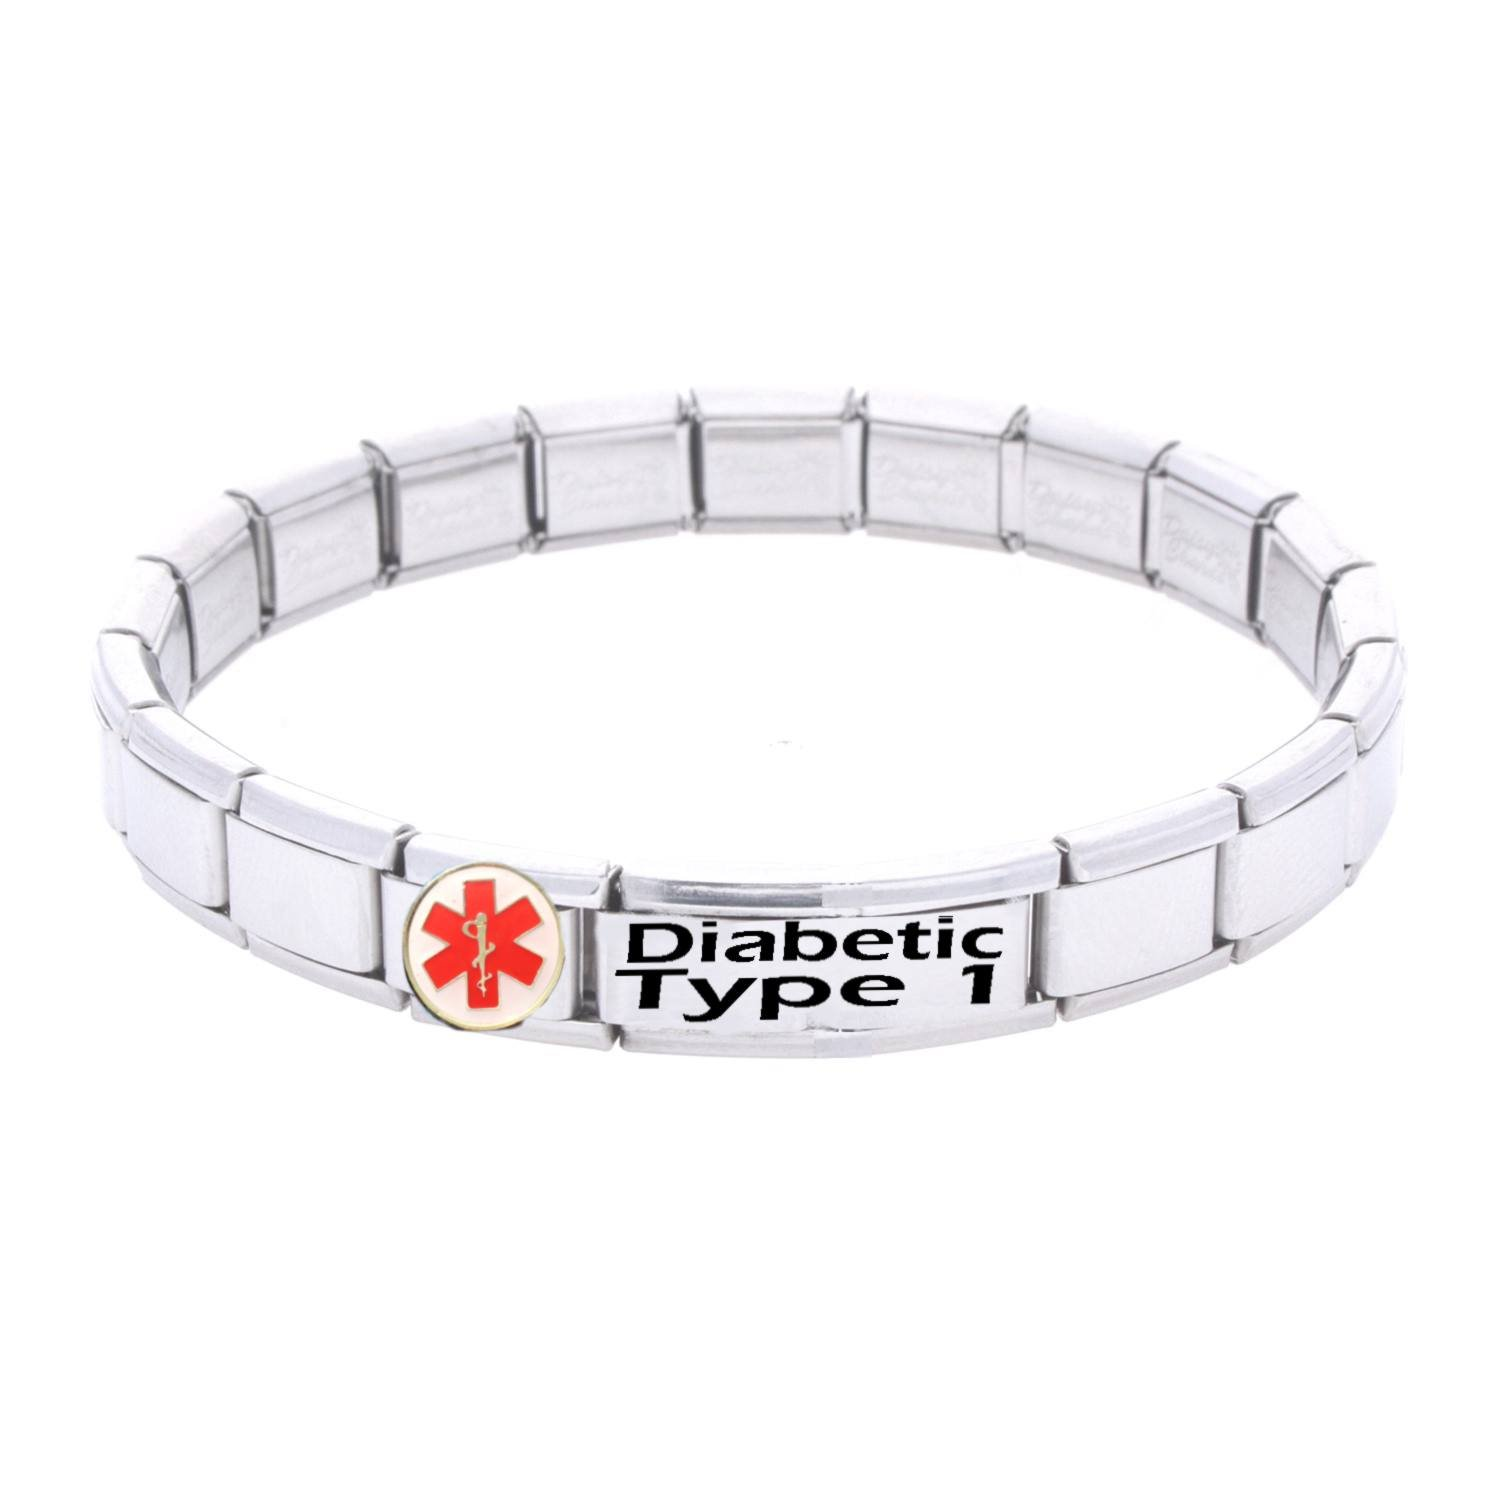 diabetes products alert type awareness bracelet